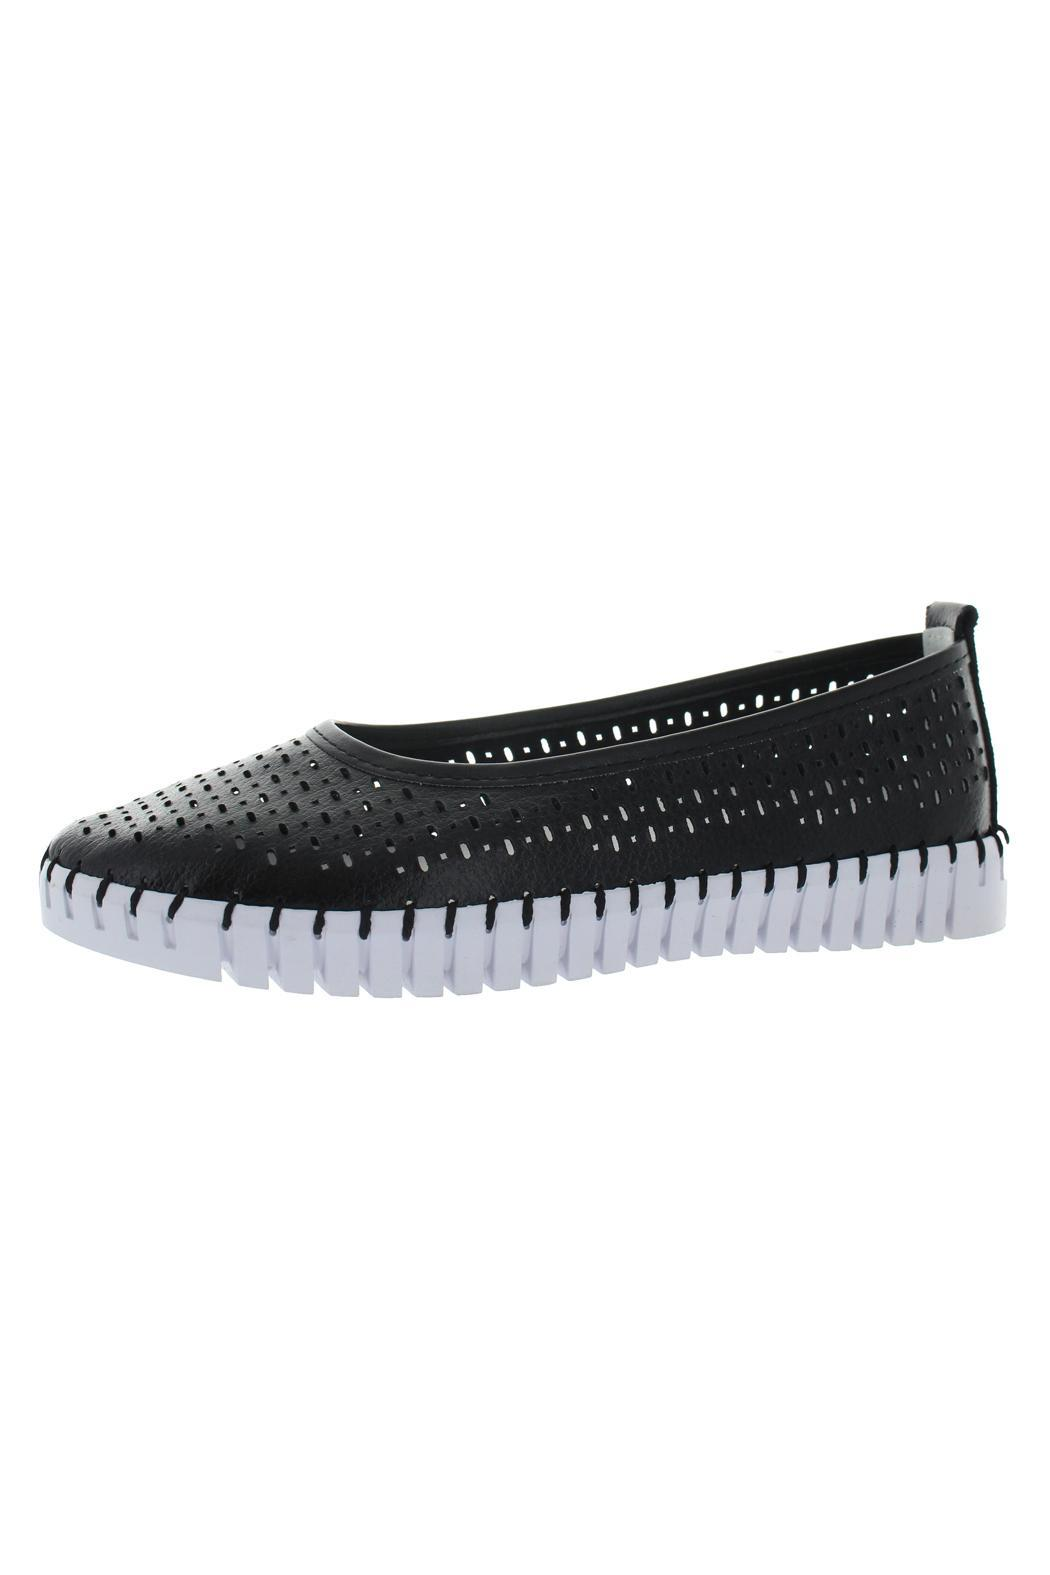 Bernie Mev Slip On Sneaker - Front Cropped Image